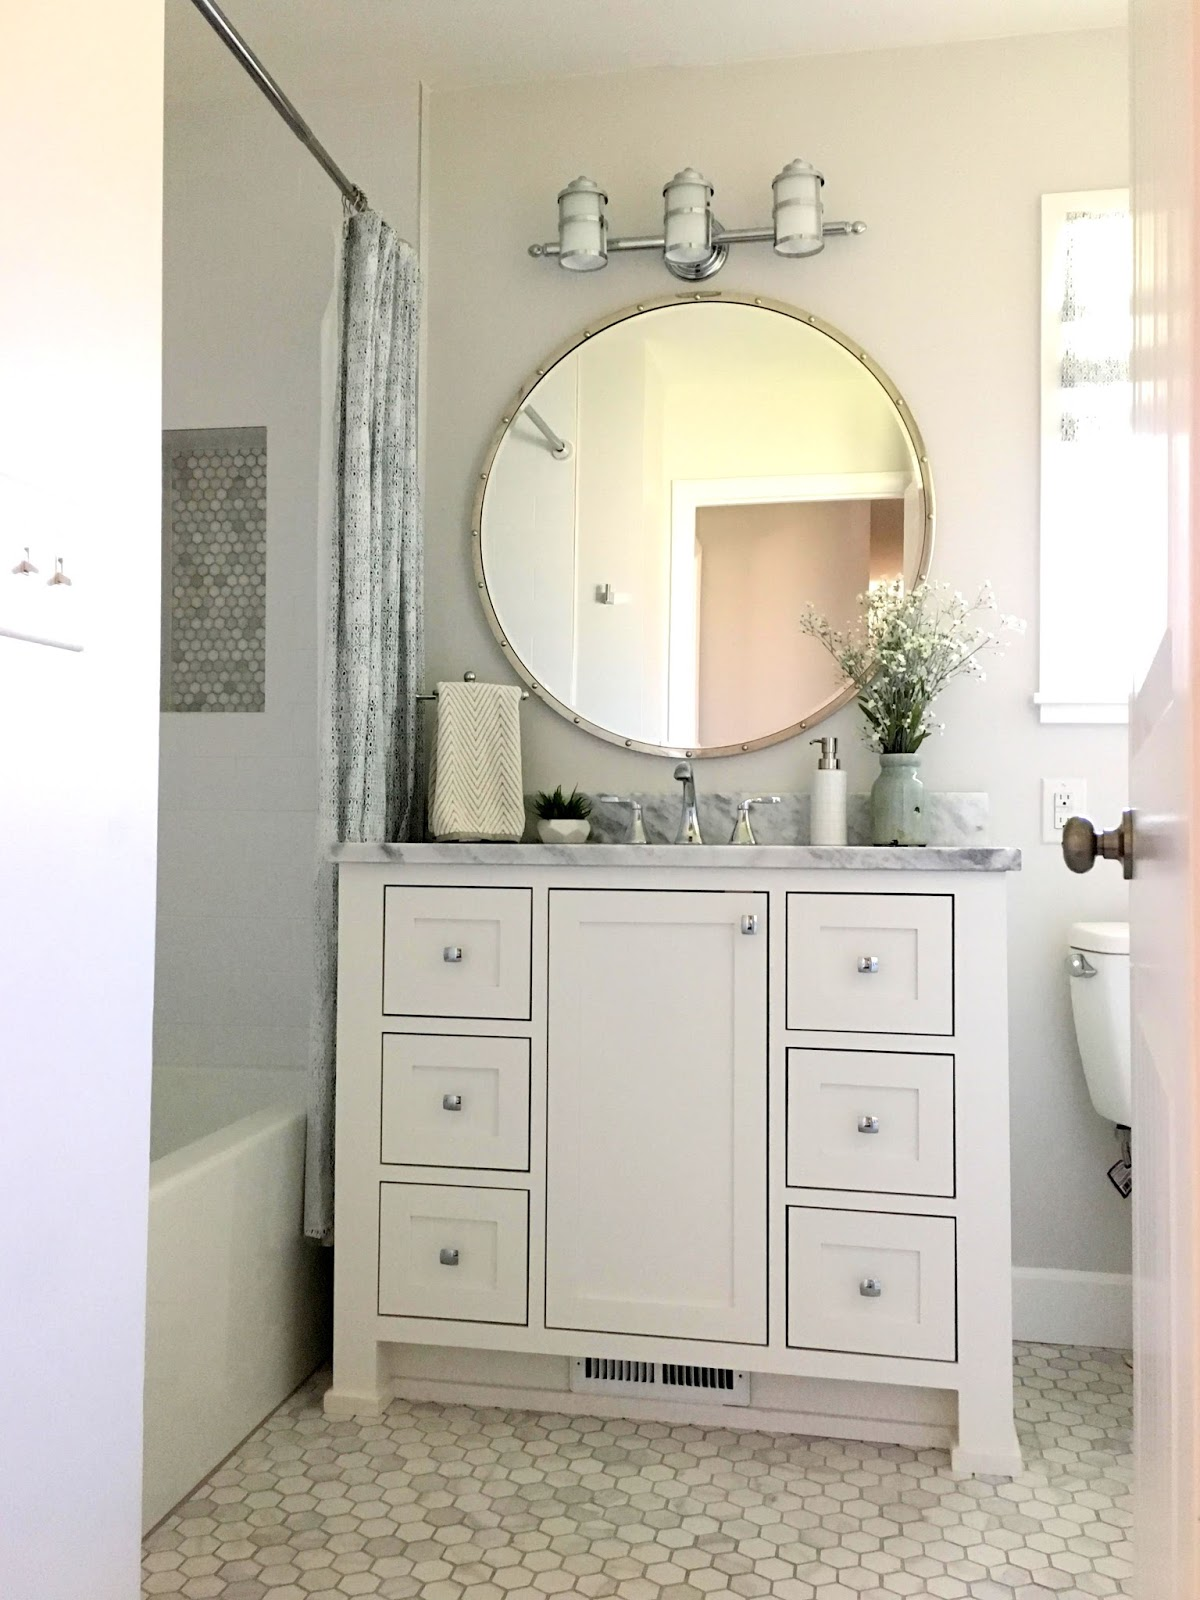 Studio 7 Interior Design: Client Reveal: Main Level Bath